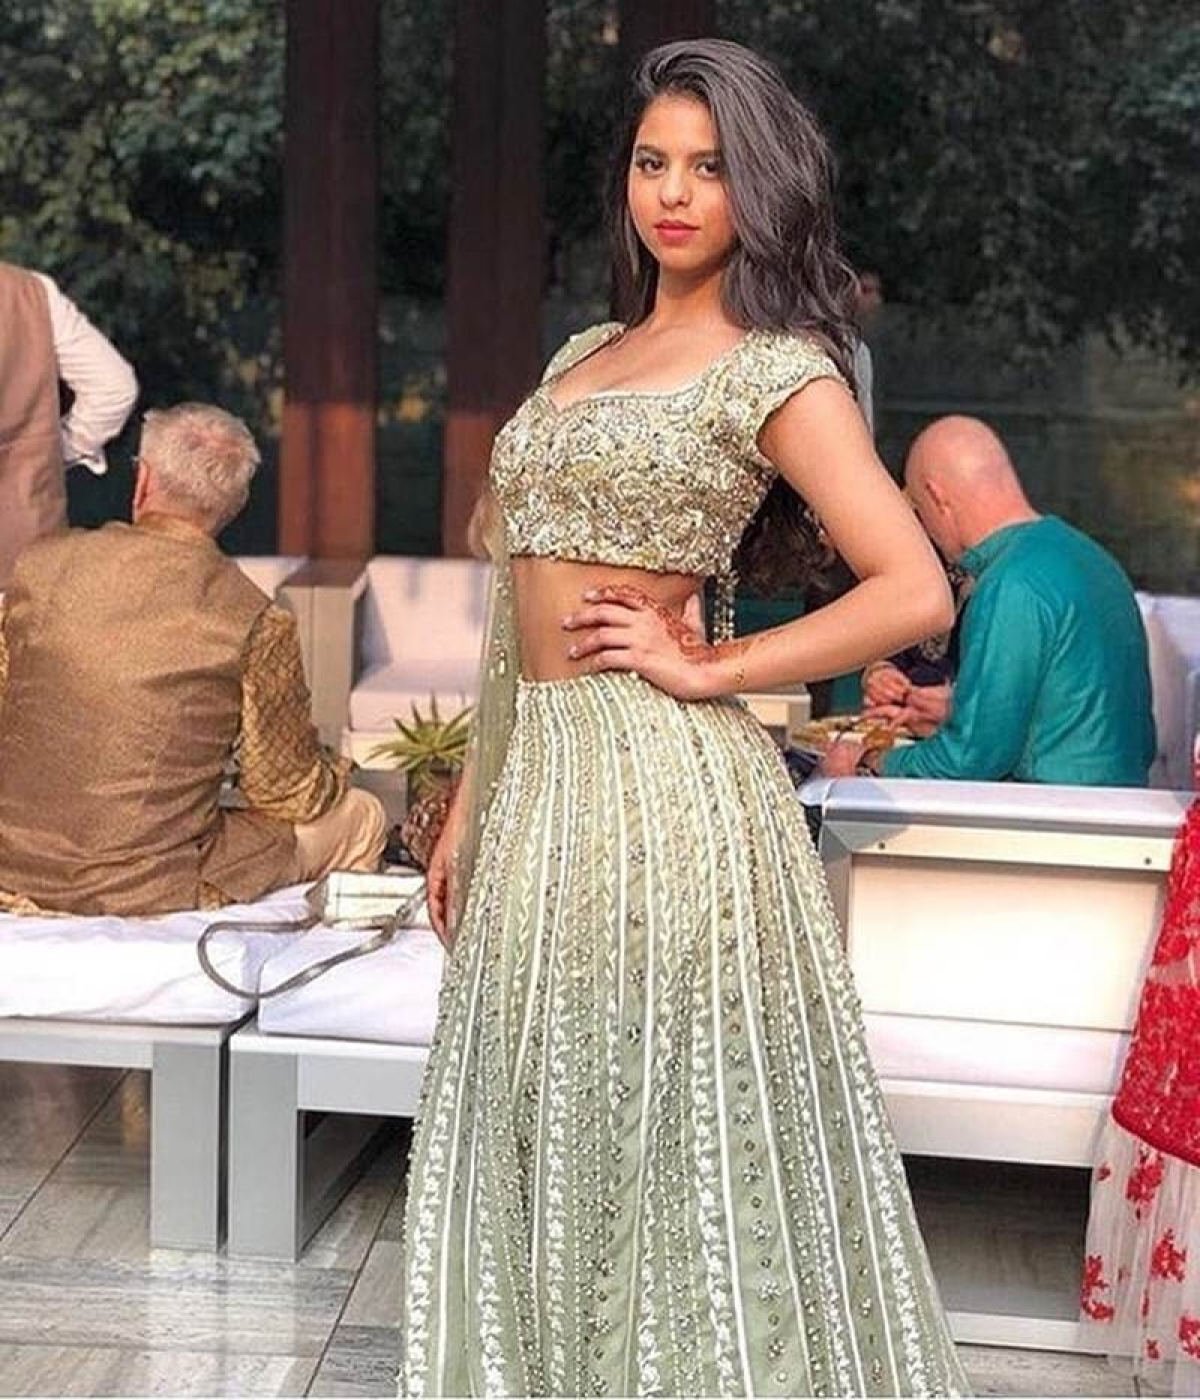 Viral Pictures: Suhana Khan grabs the eye balls with her traditional looks at a wedding in Delhi